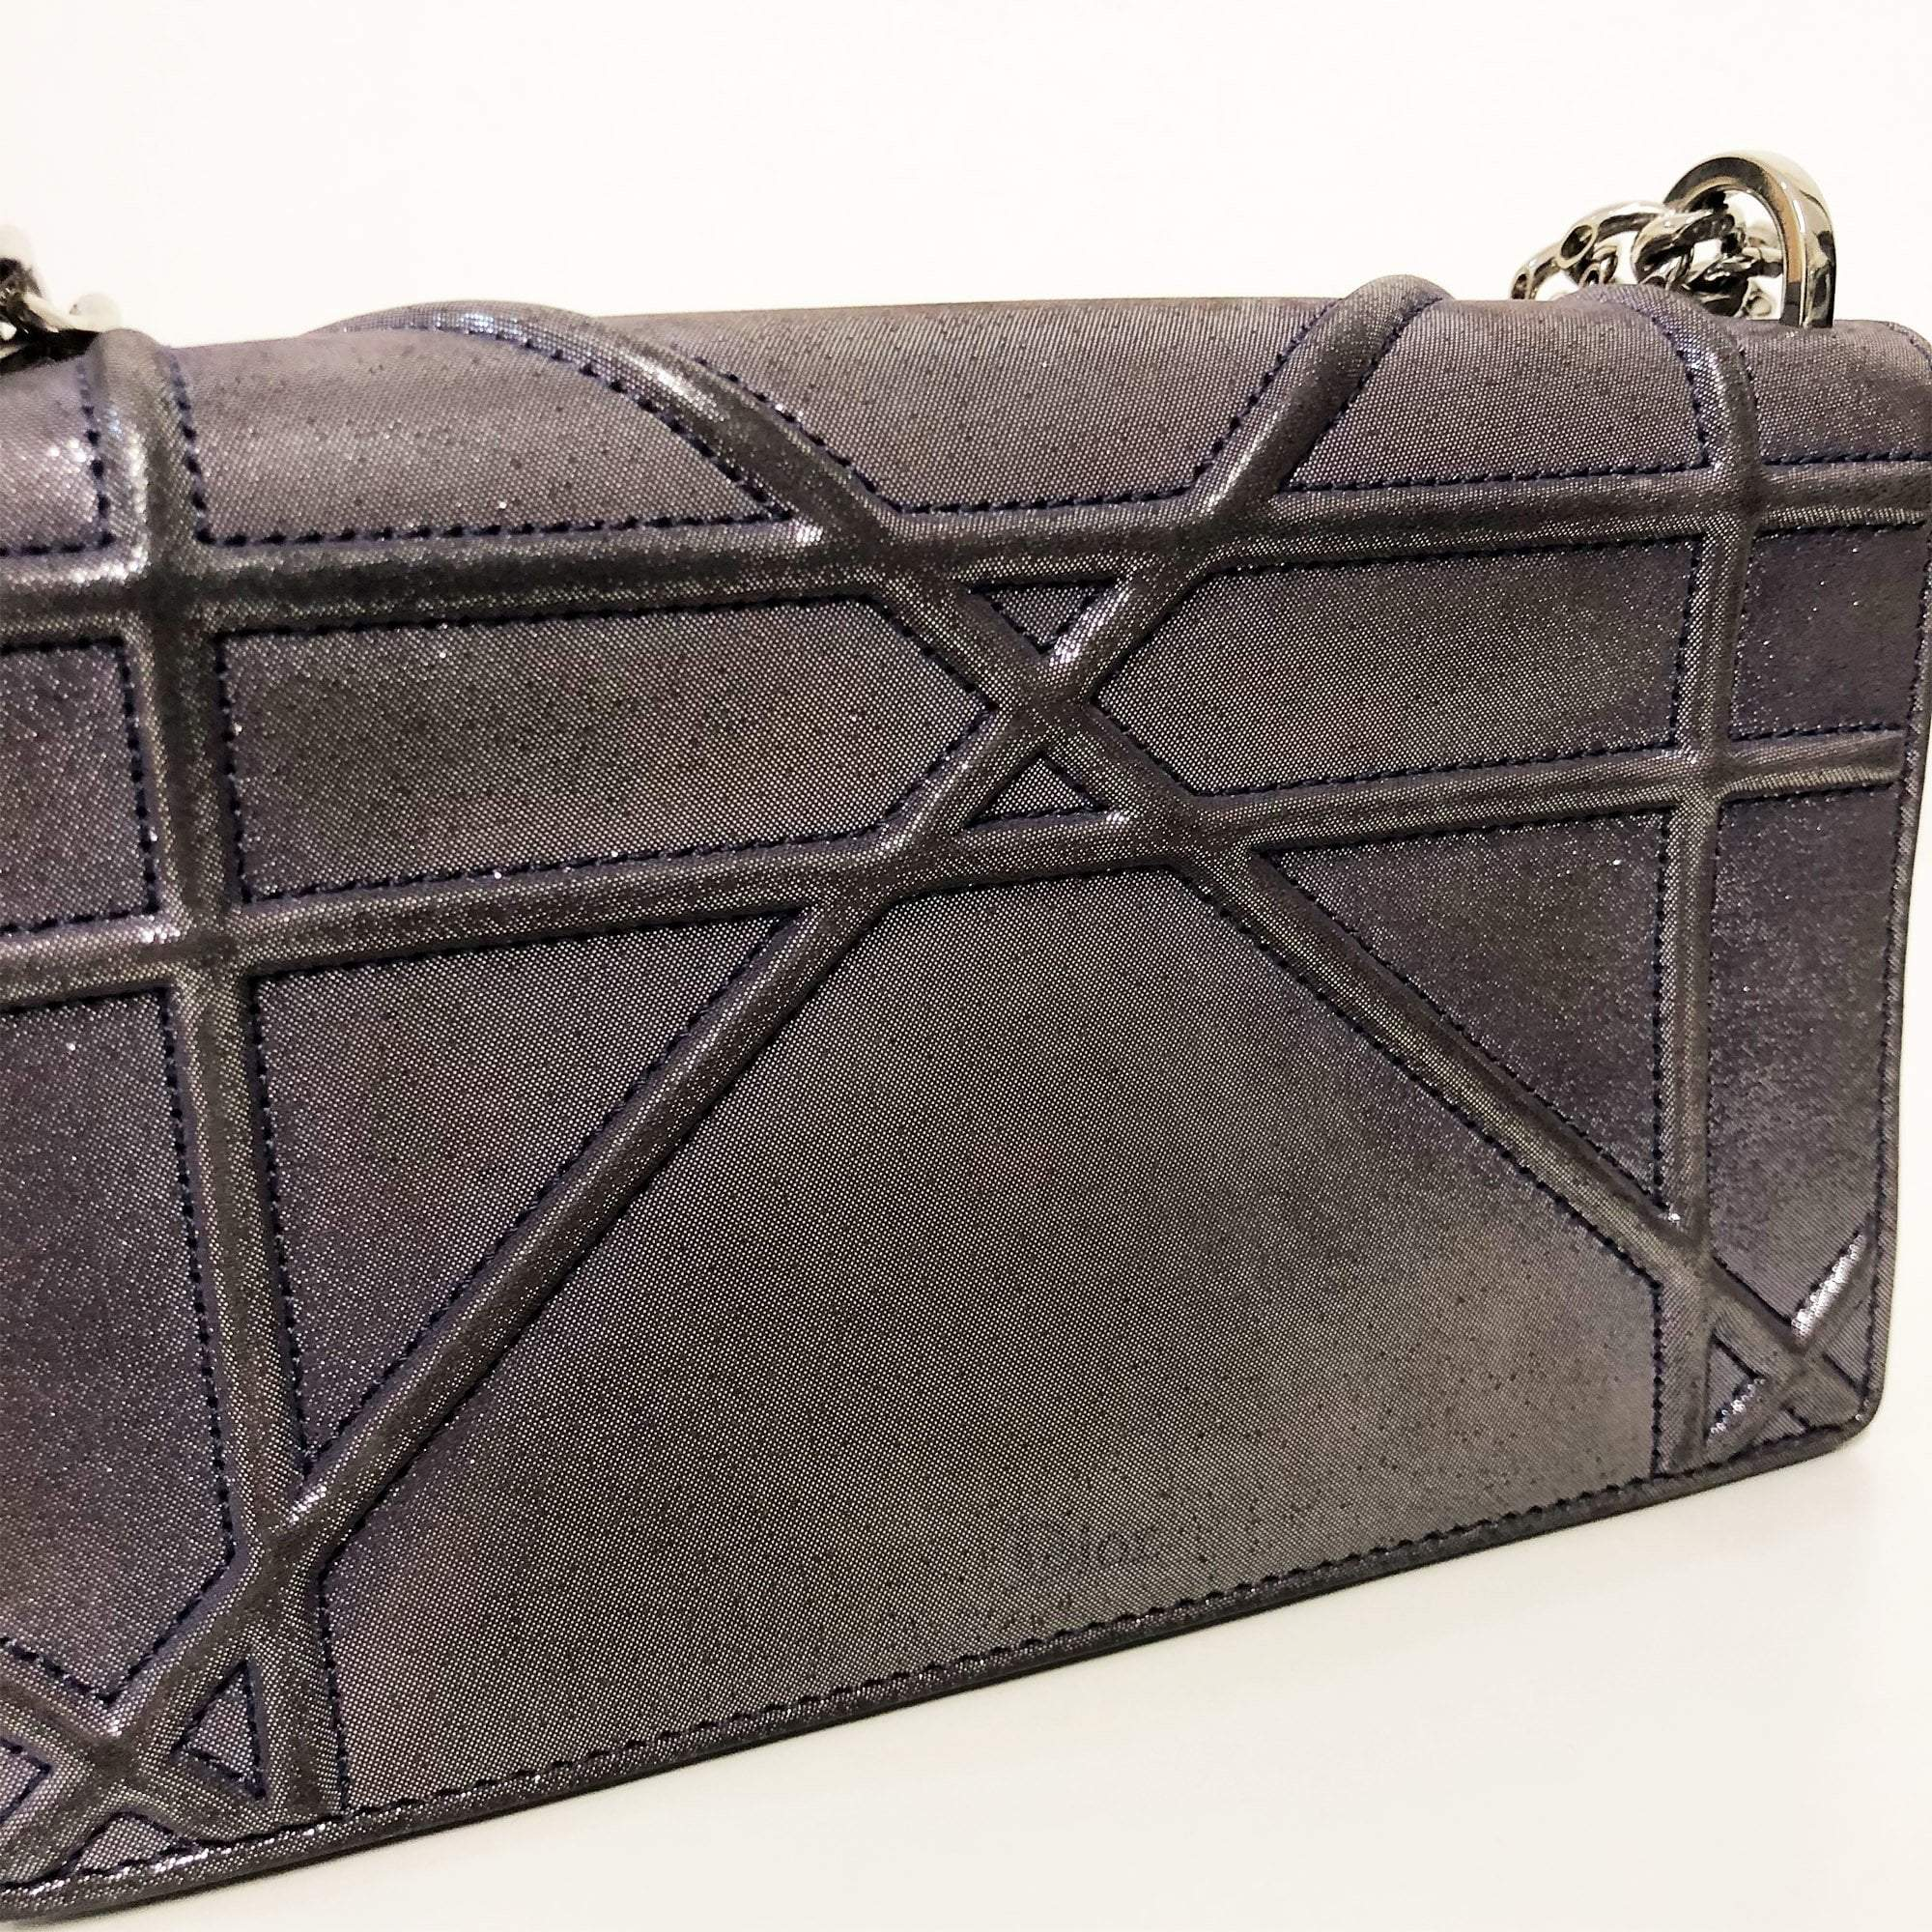 Christian Dior Diorama Micro Crossbody Bag